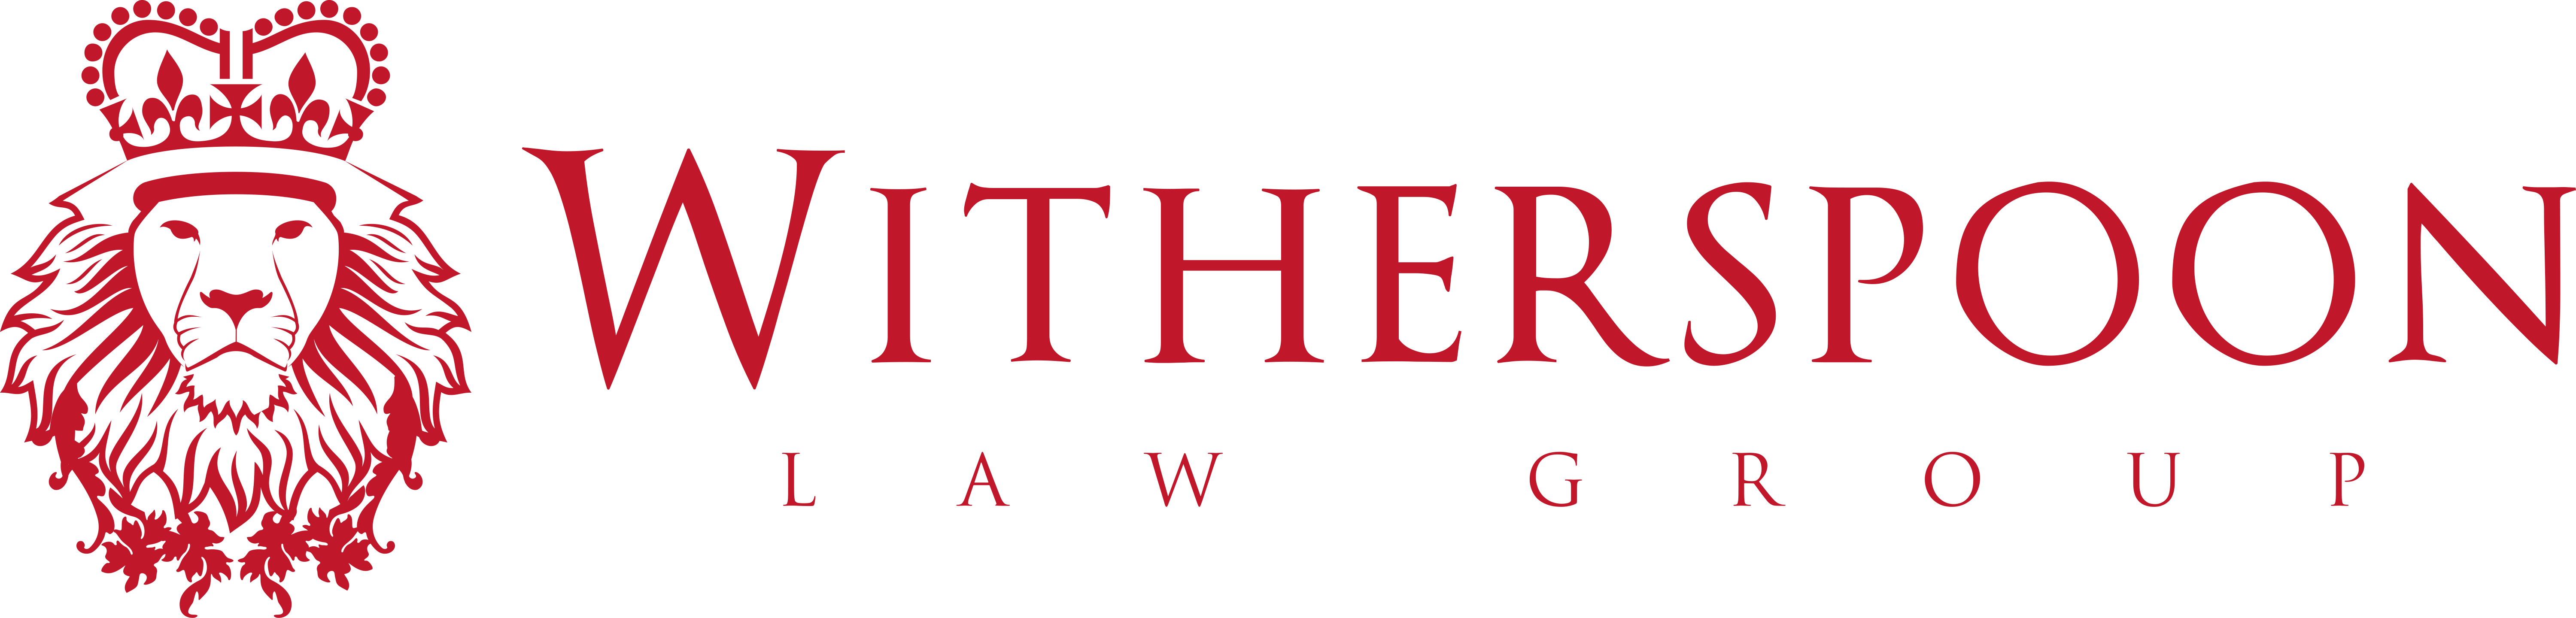 The Witherspoon Law Group Forms